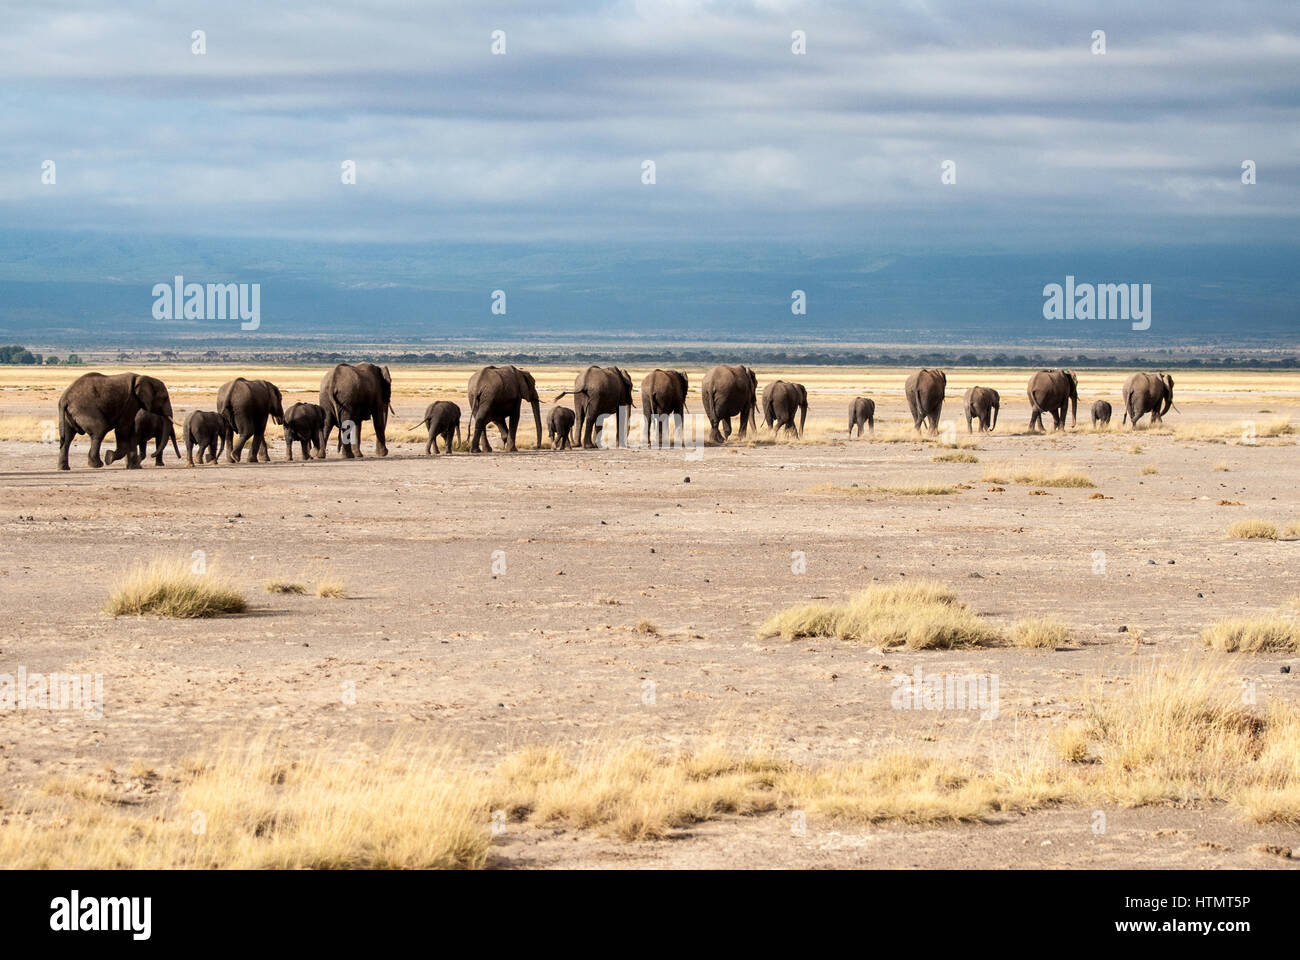 Elephants of Amboseli. A line of elephants, including their young, make their way towards a watering hole in Amboseli - Stock Image